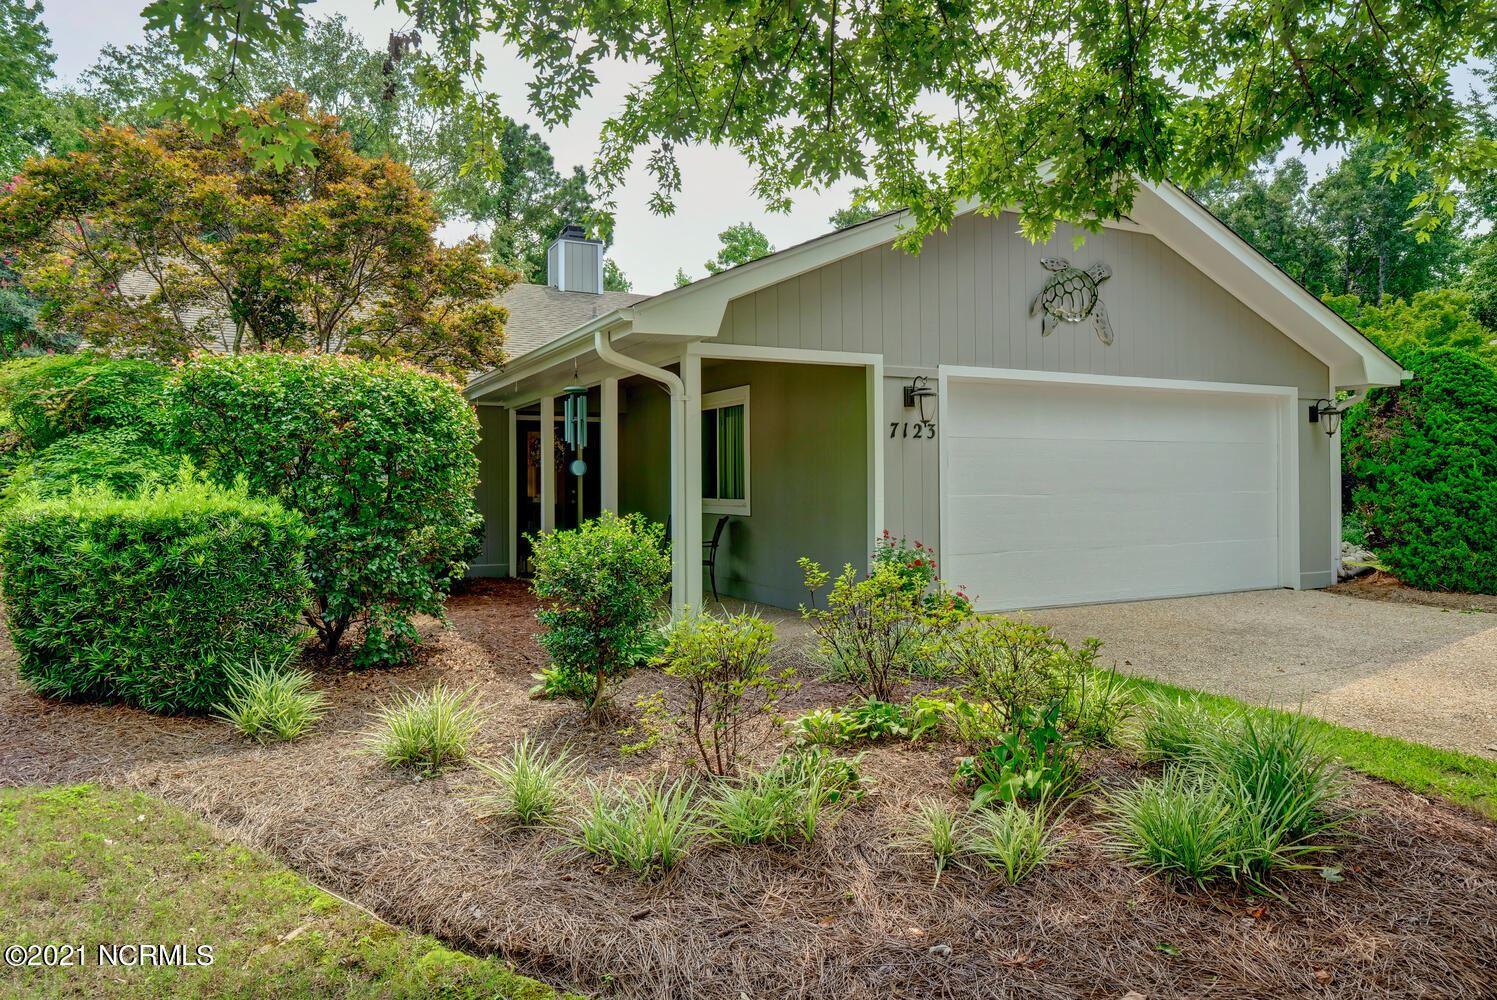 Photo for 7123 Key Pointe Drive, Wilmington, NC 28405 (MLS # 100284101)